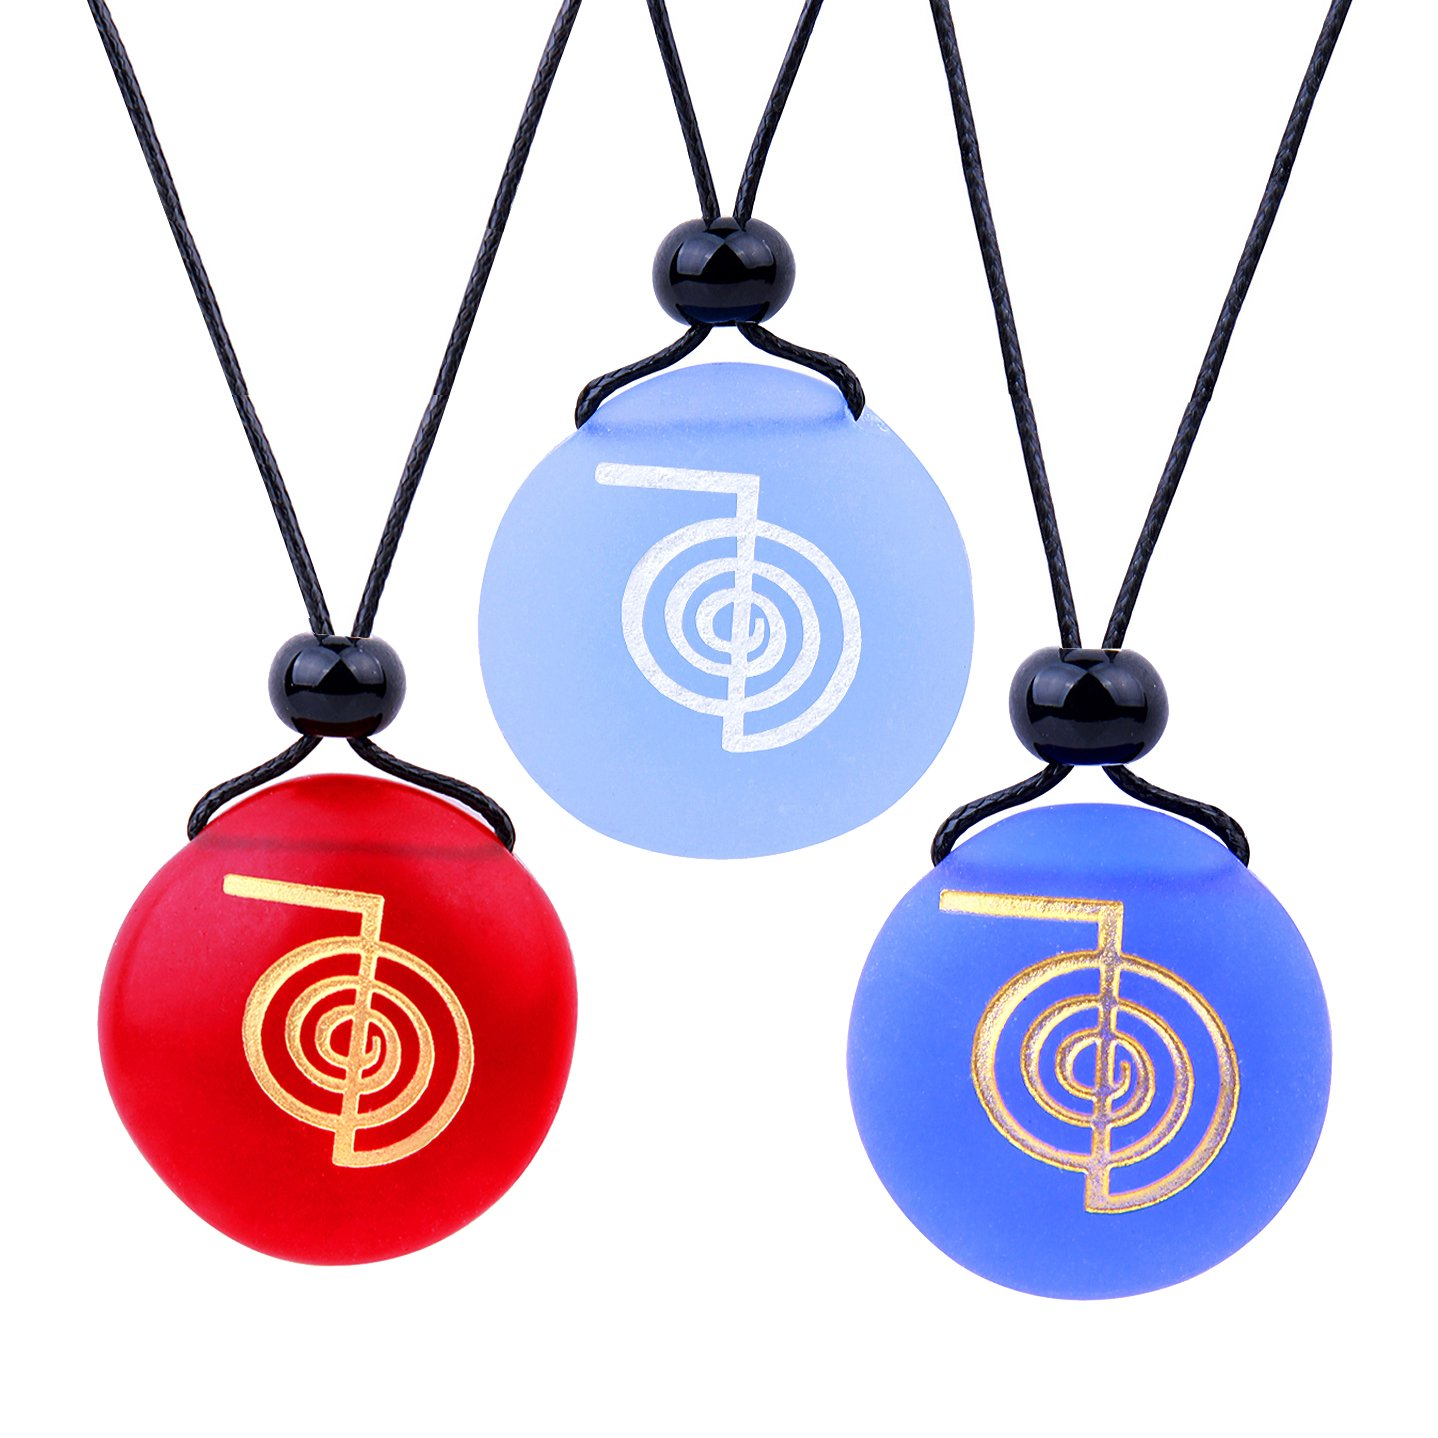 Frosted Sea Glass Stones Choku Rei Reiki Energy Ohm Best Friends BFF Amulets Royal Sky Blue Red Necklaces